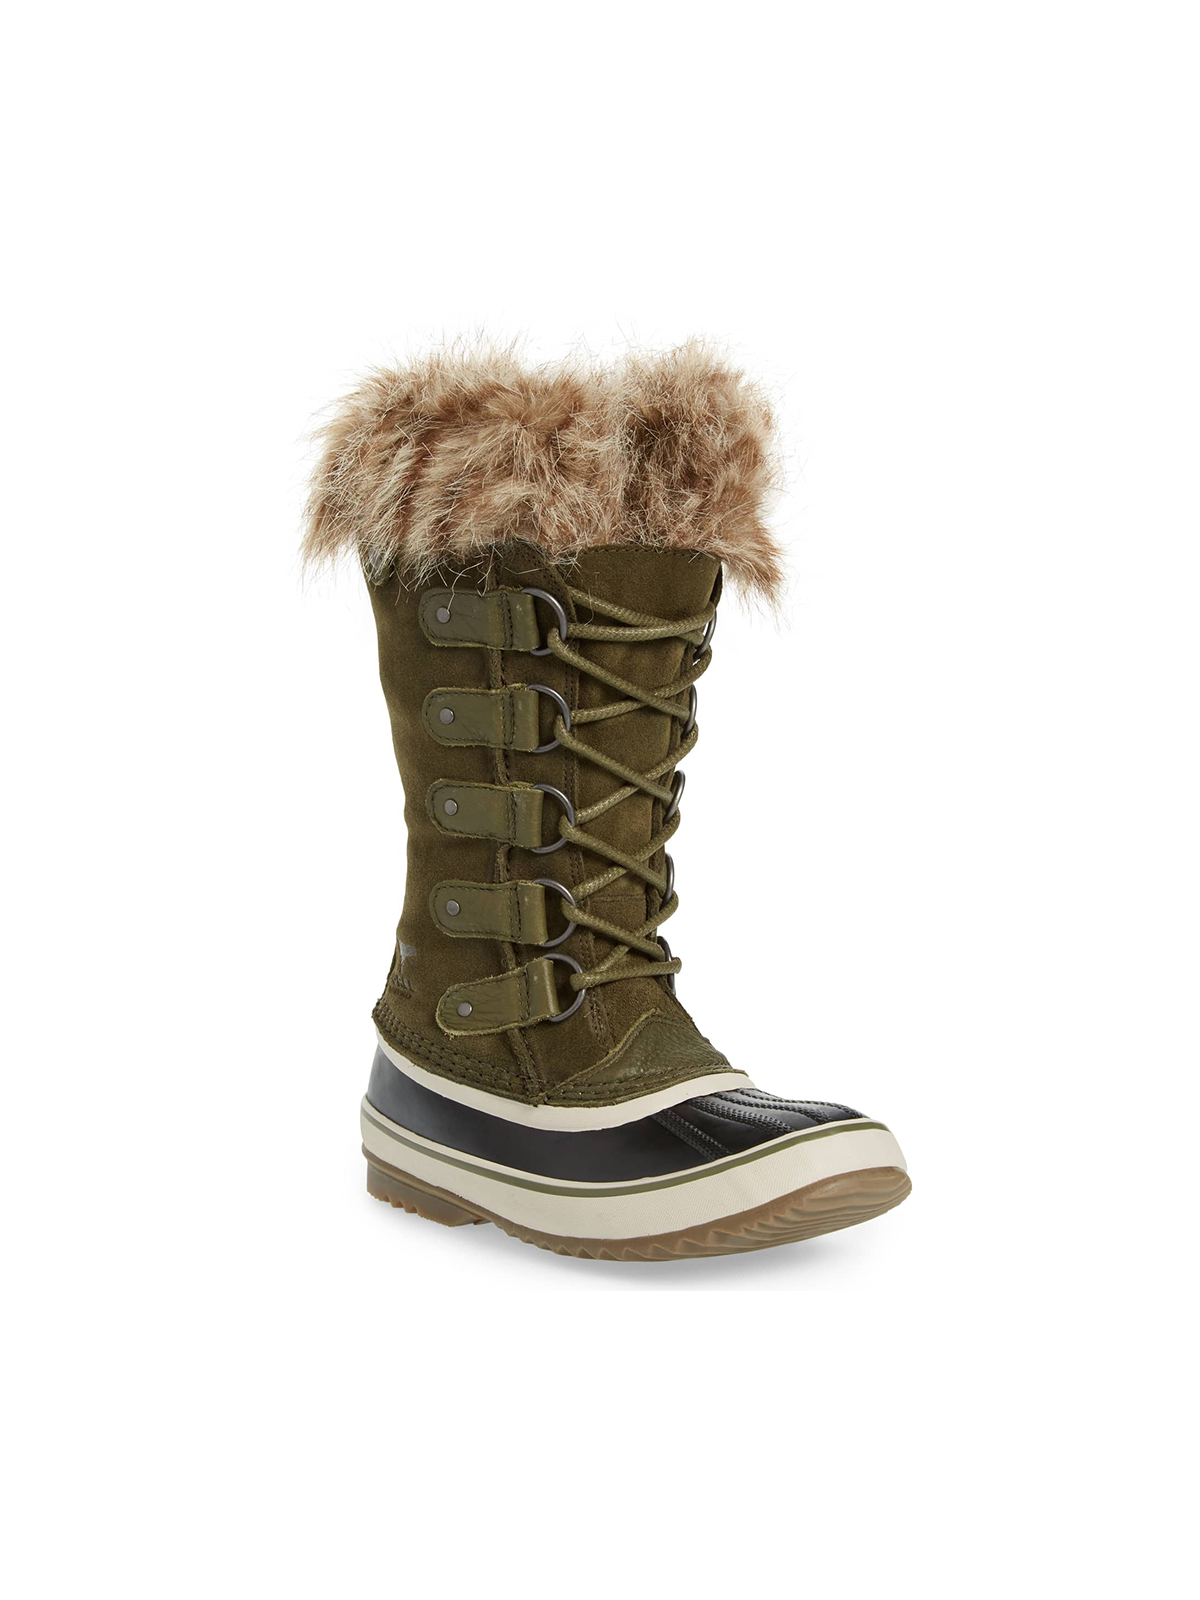 Womens lace up winter boots in green